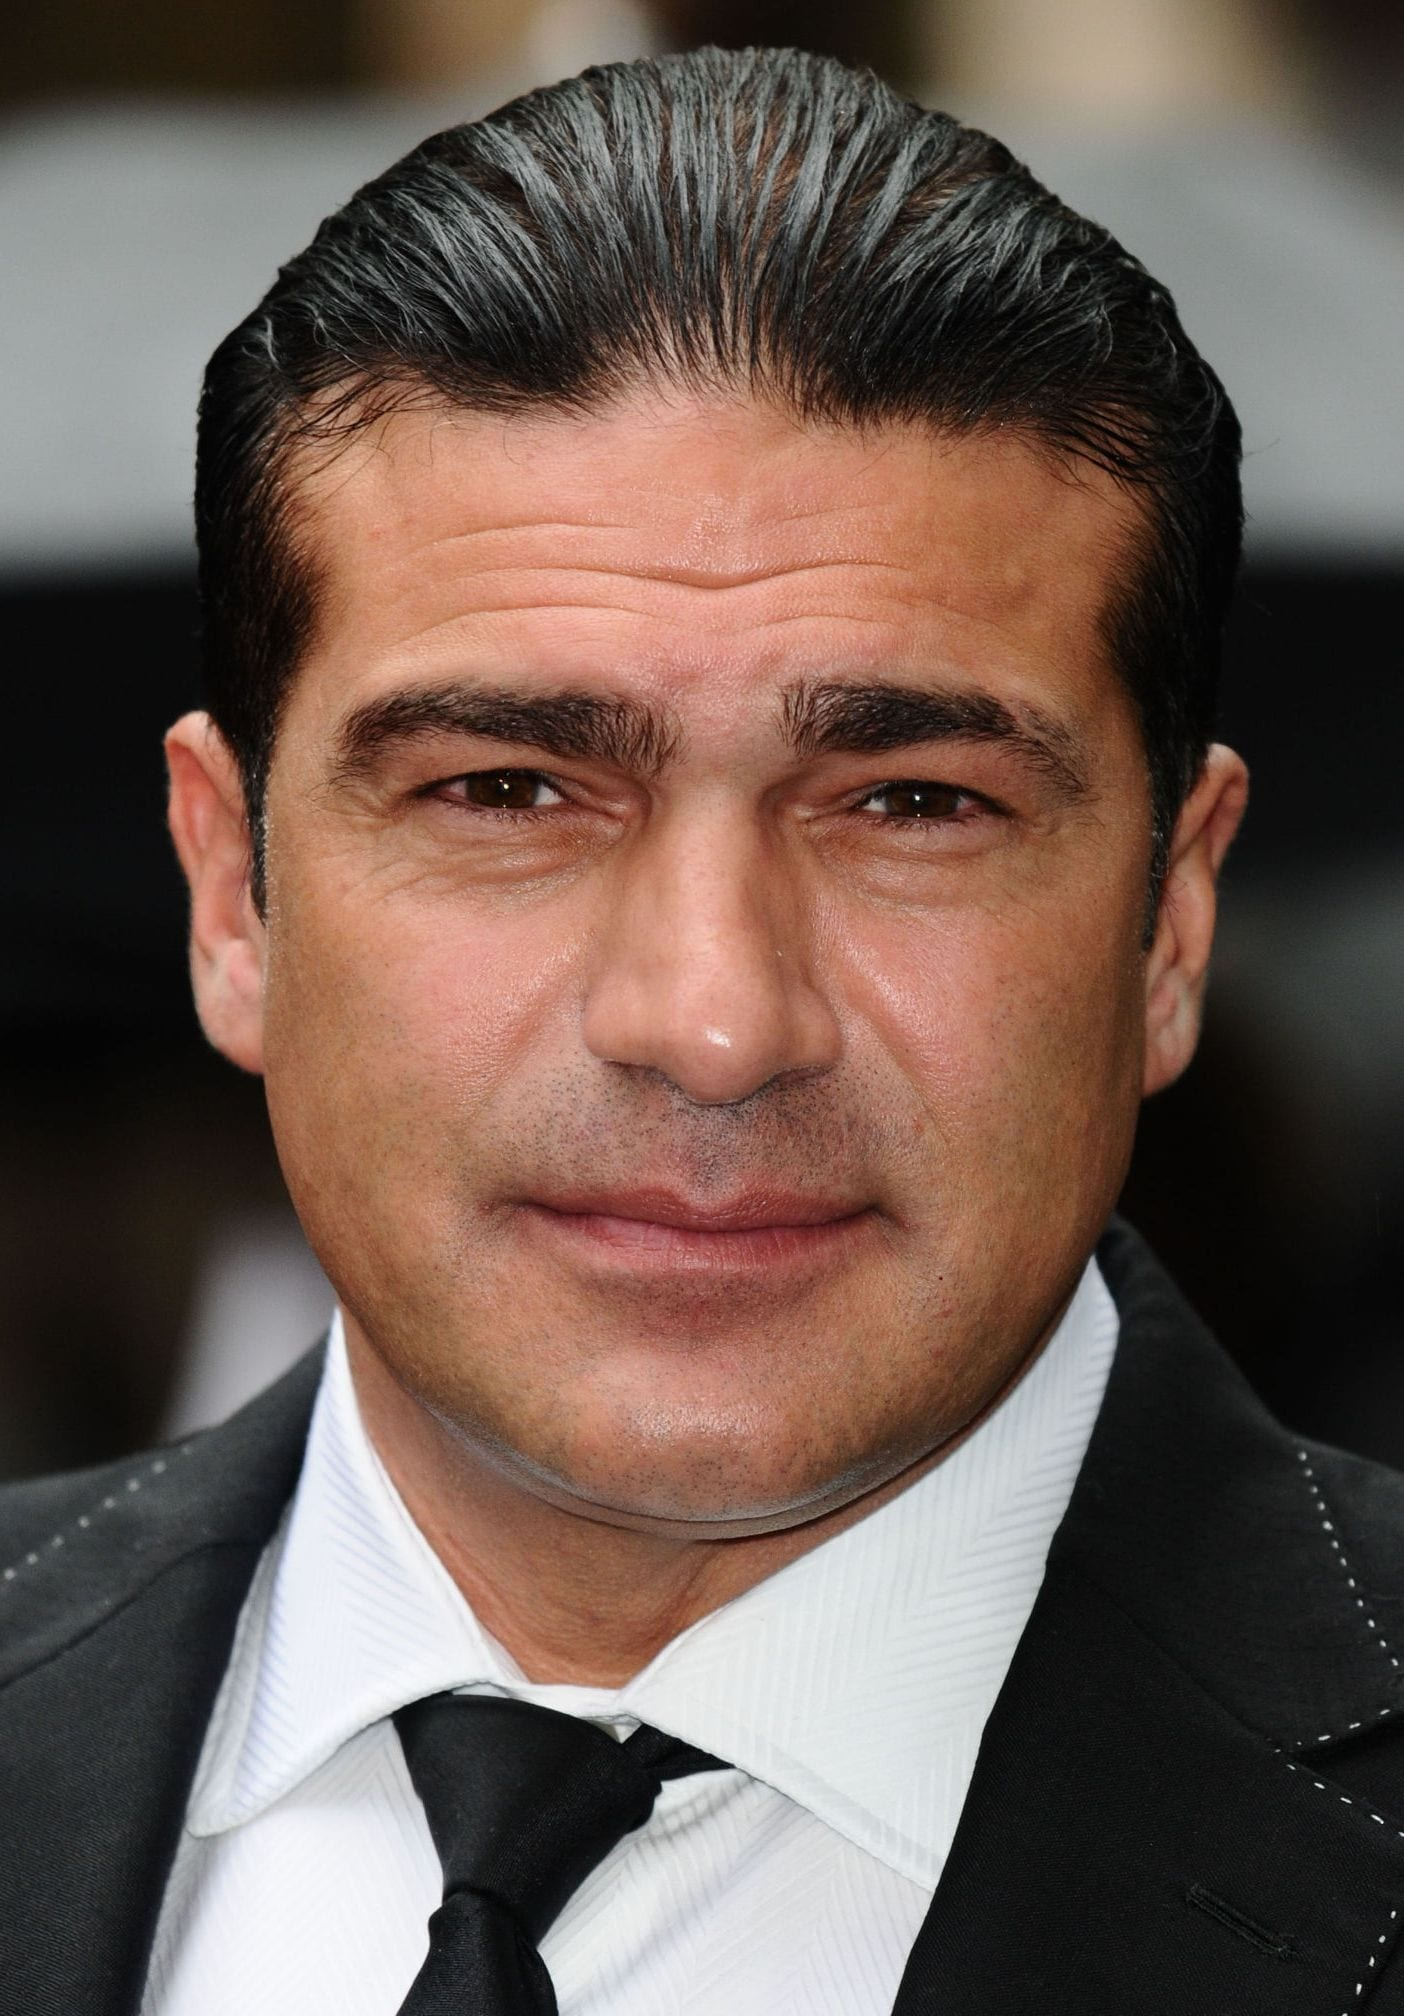 Tammer Hassan slicked back